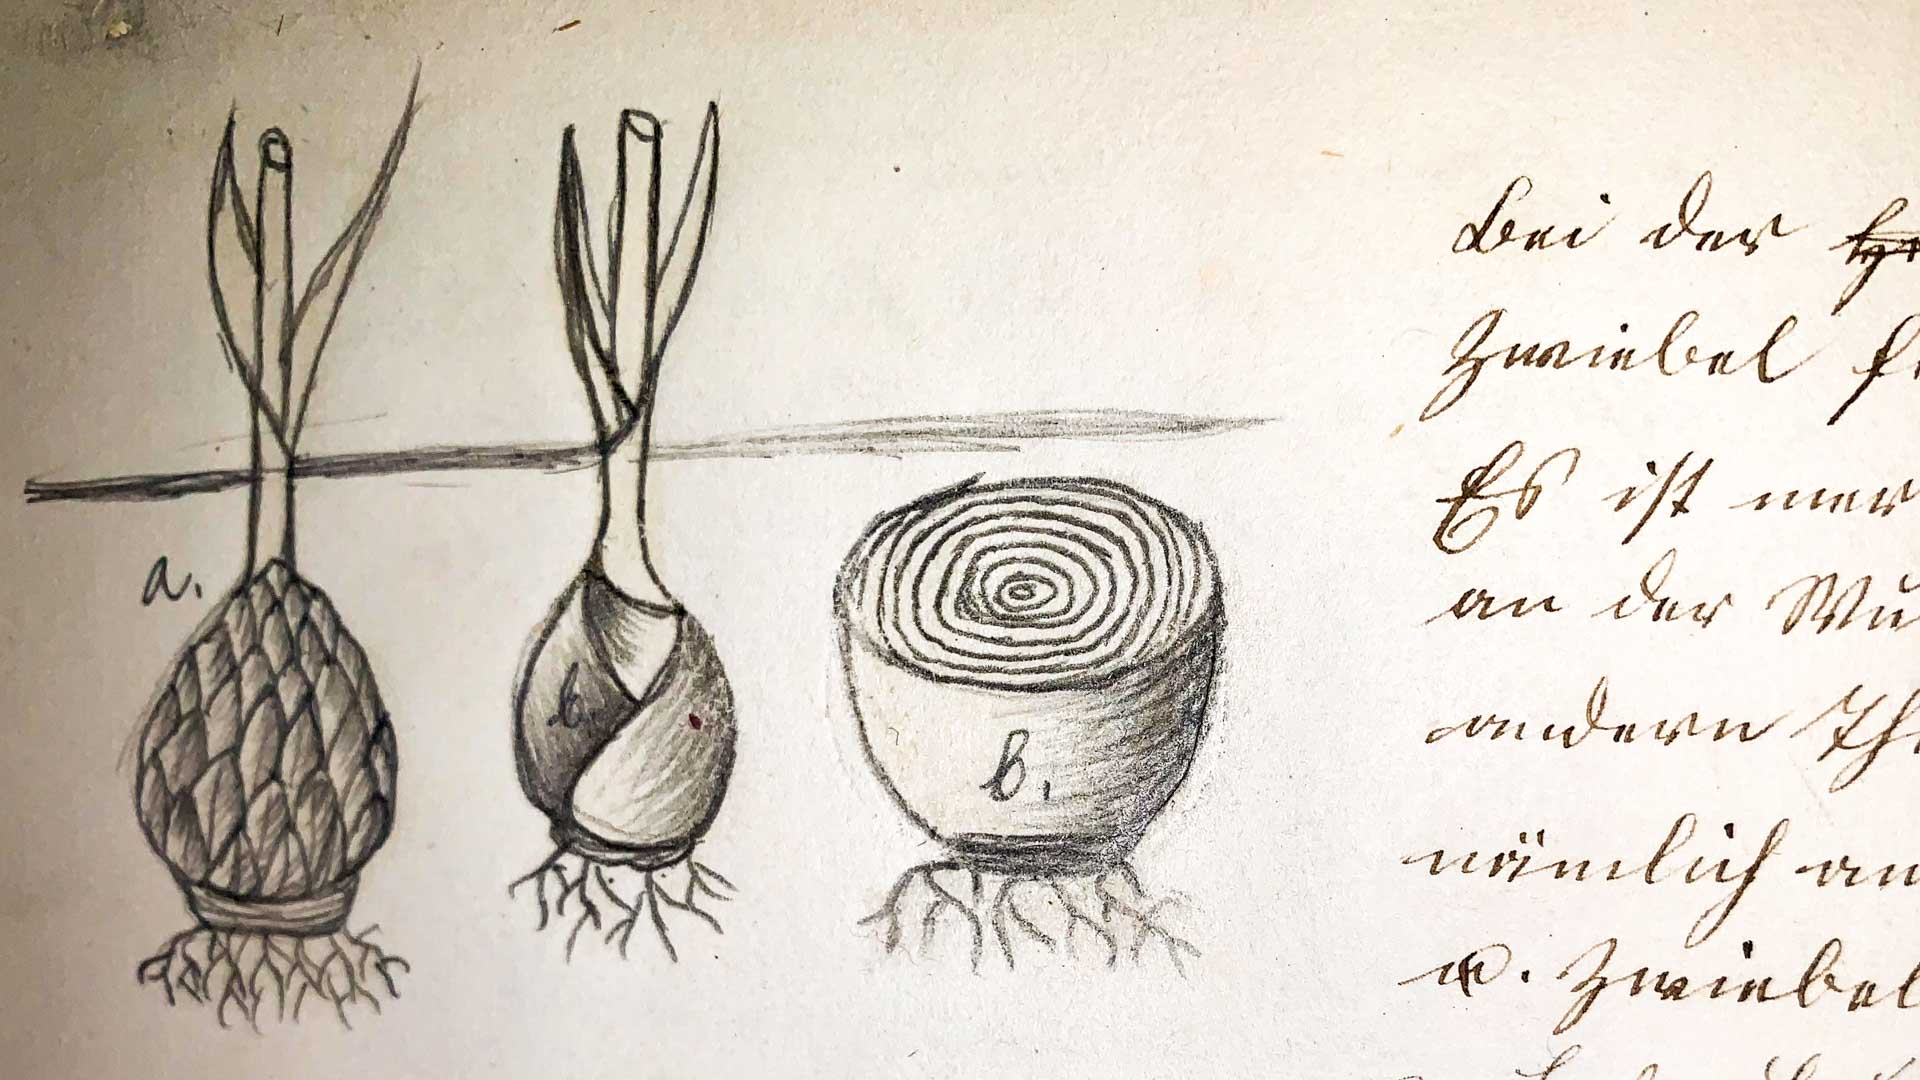 1855, Botany exercise book by J. Gesser (15 years?) © Ströter-Bender Collection